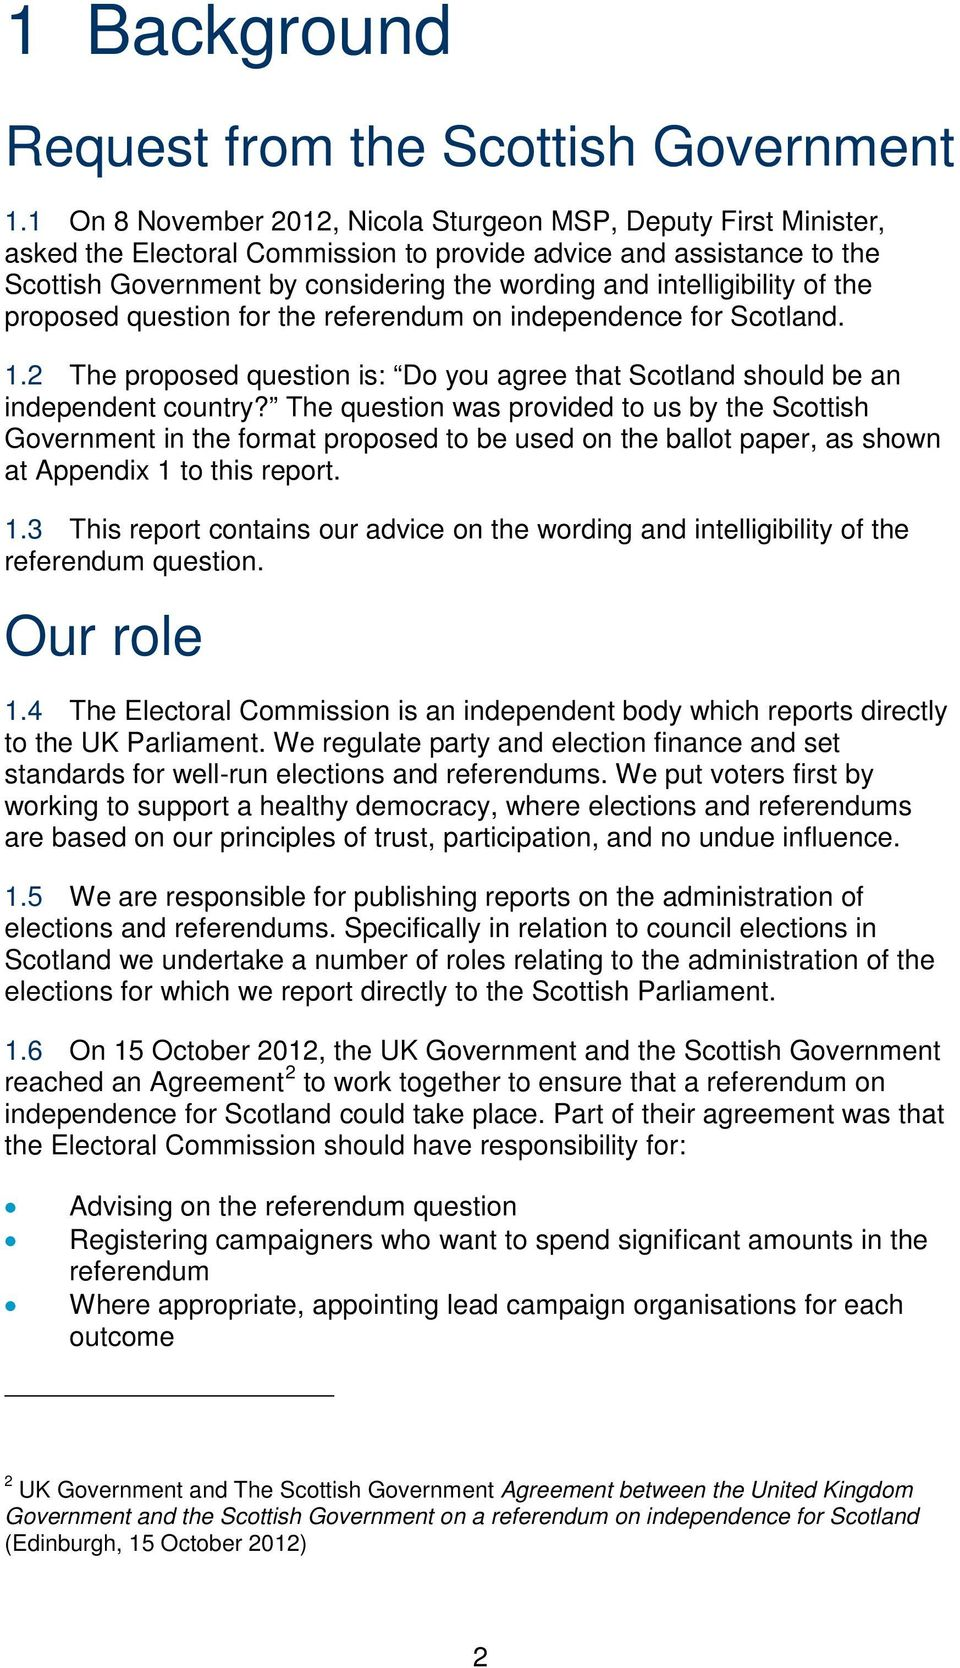 intelligibility of the proposed question for the referendum on independence for Scotland. 1.2 The proposed question is: Do you agree that Scotland should be an independent country?